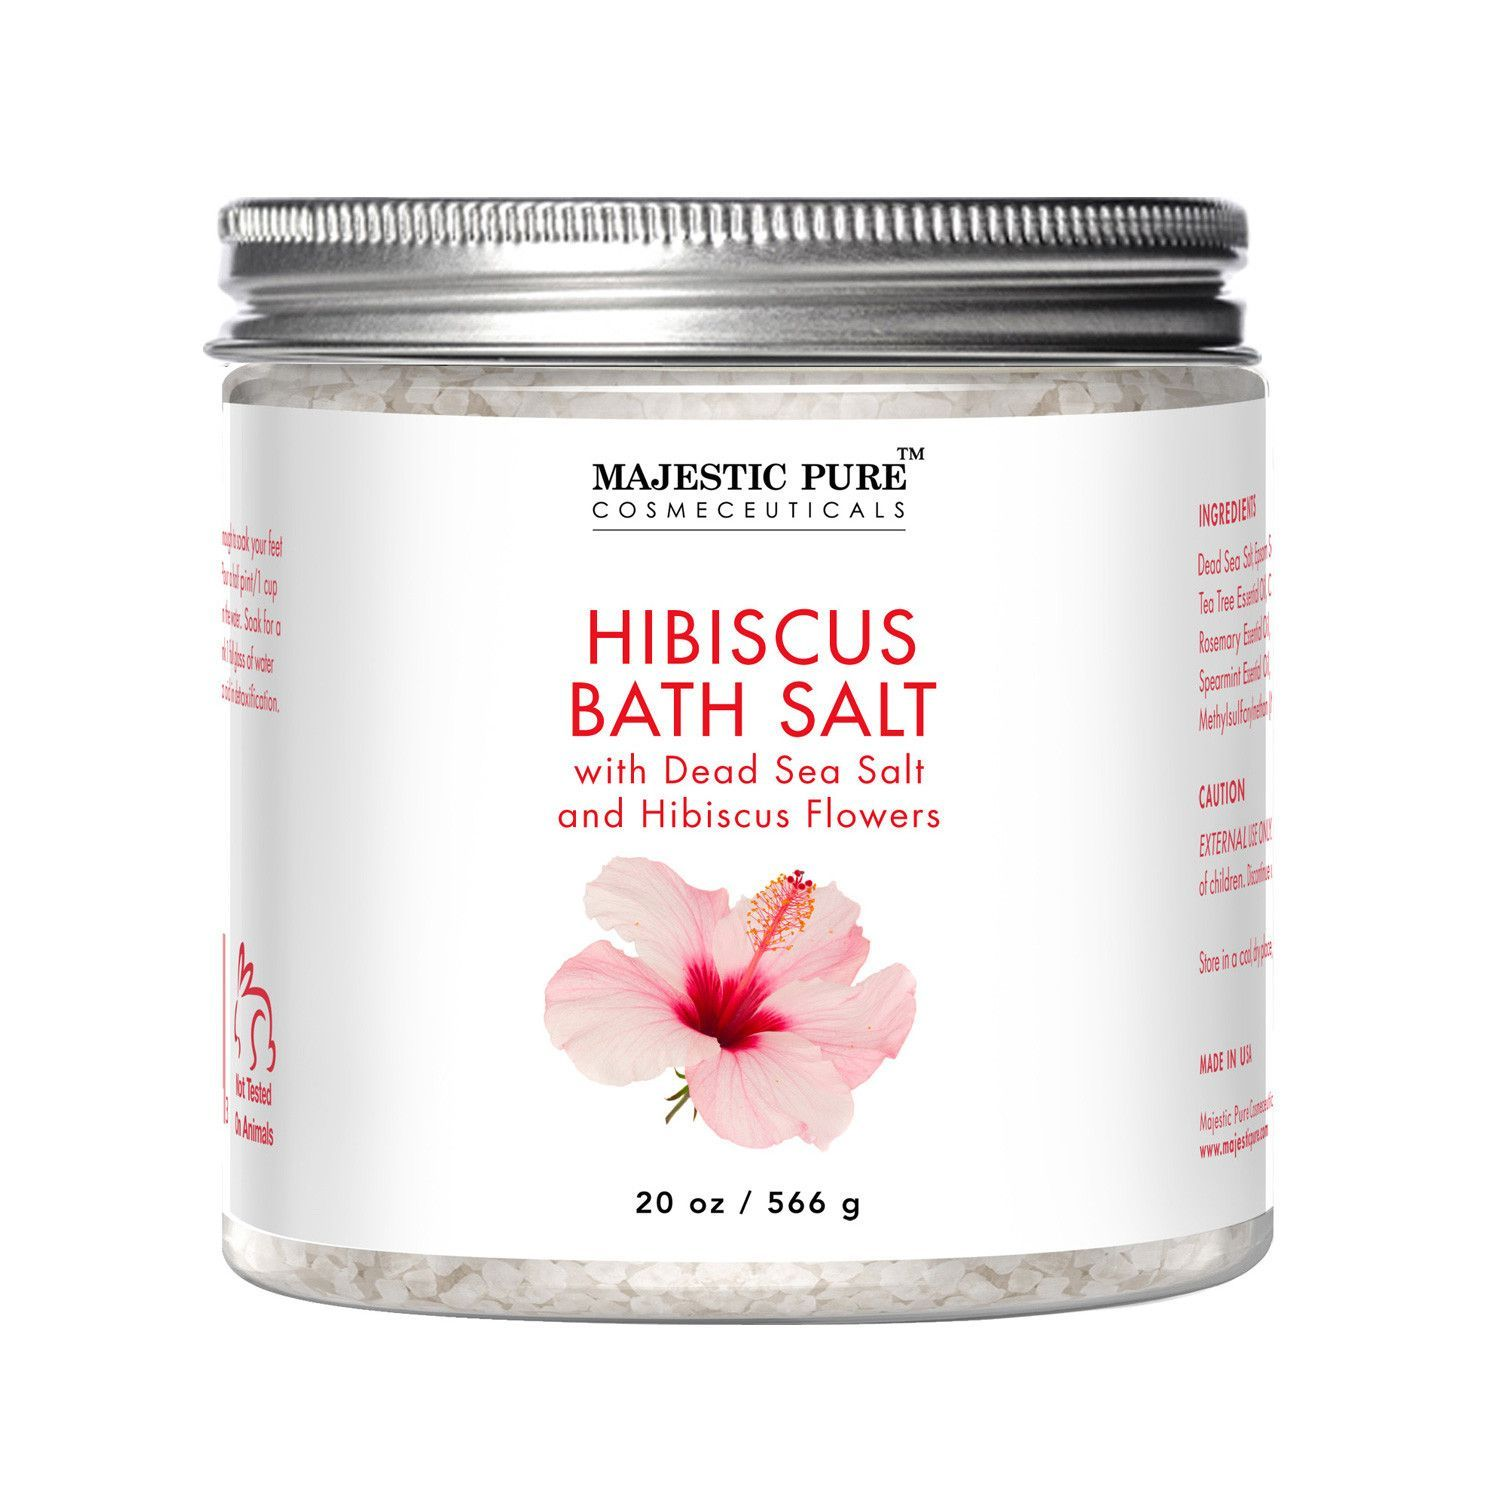 Hibiscus flower bath salt hibiscus flowers bath salts and hibiscus hibiscus plants are known for their large colorful flowers that make a decorative addition to a home or garden they also have medicinal uses flowers and izmirmasajfo